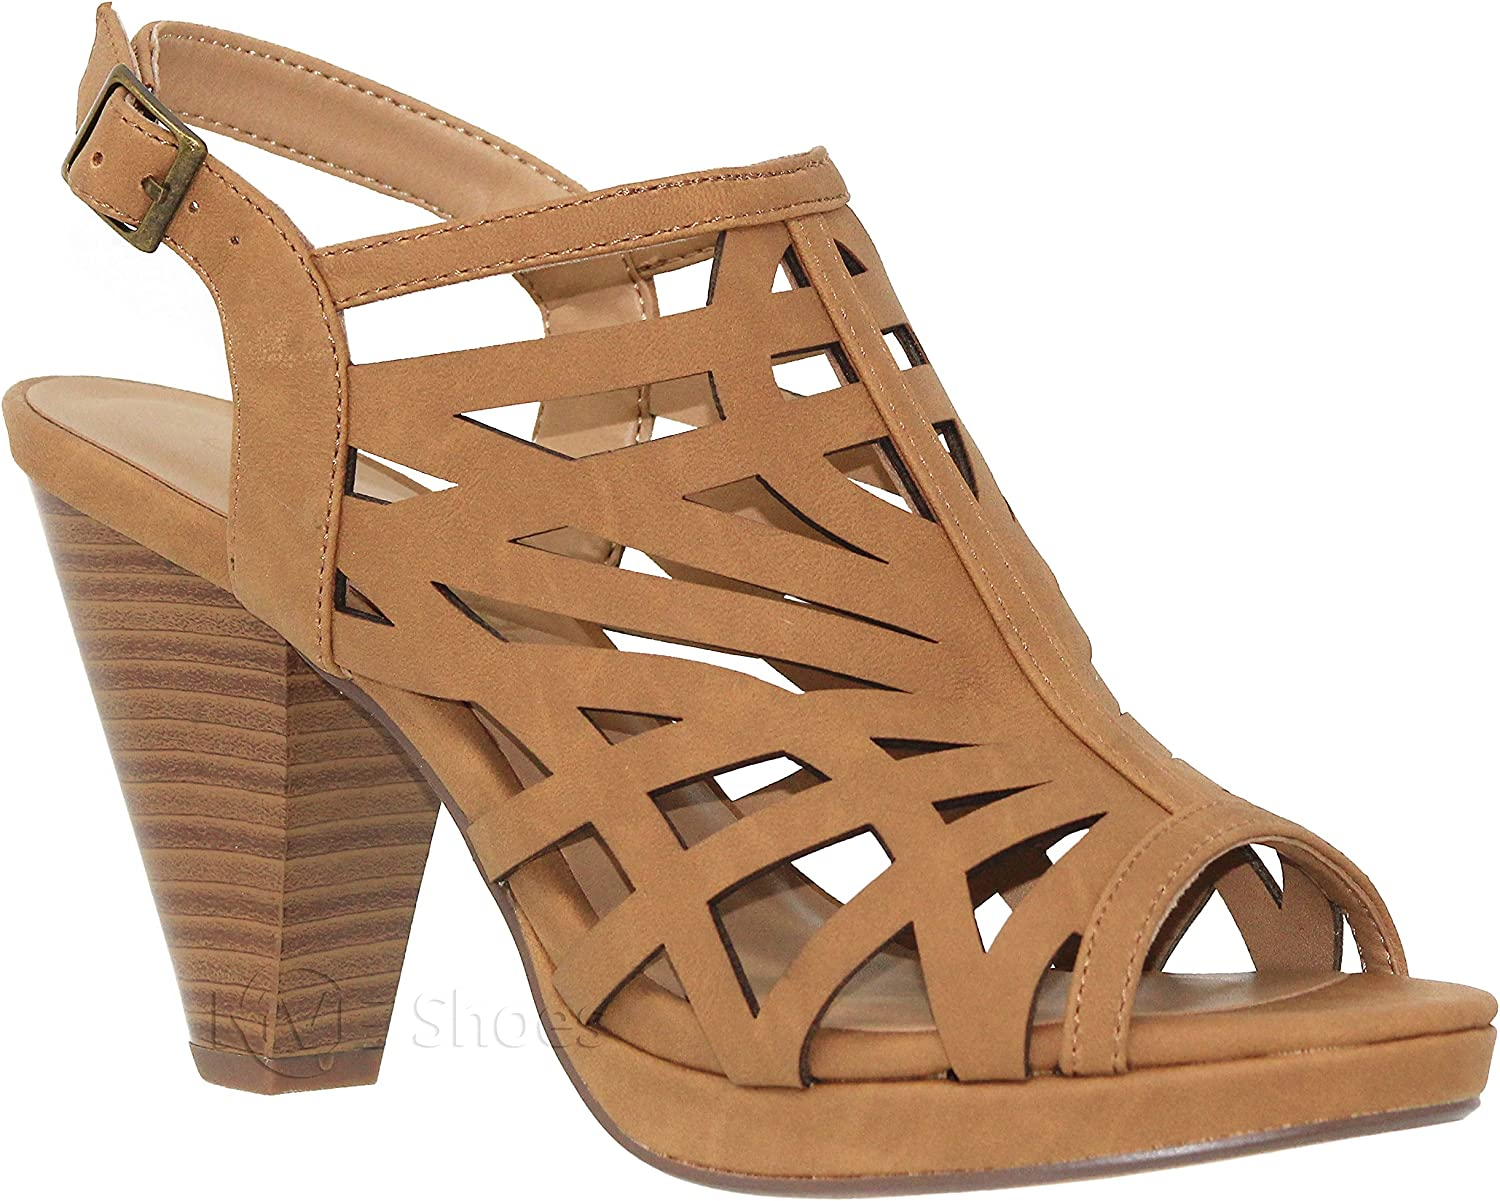 MVE Shoes Open Toe Perforate Outlet sale feature Laser TAN Cut Heeled Sandal Max 63% OFF Chunky